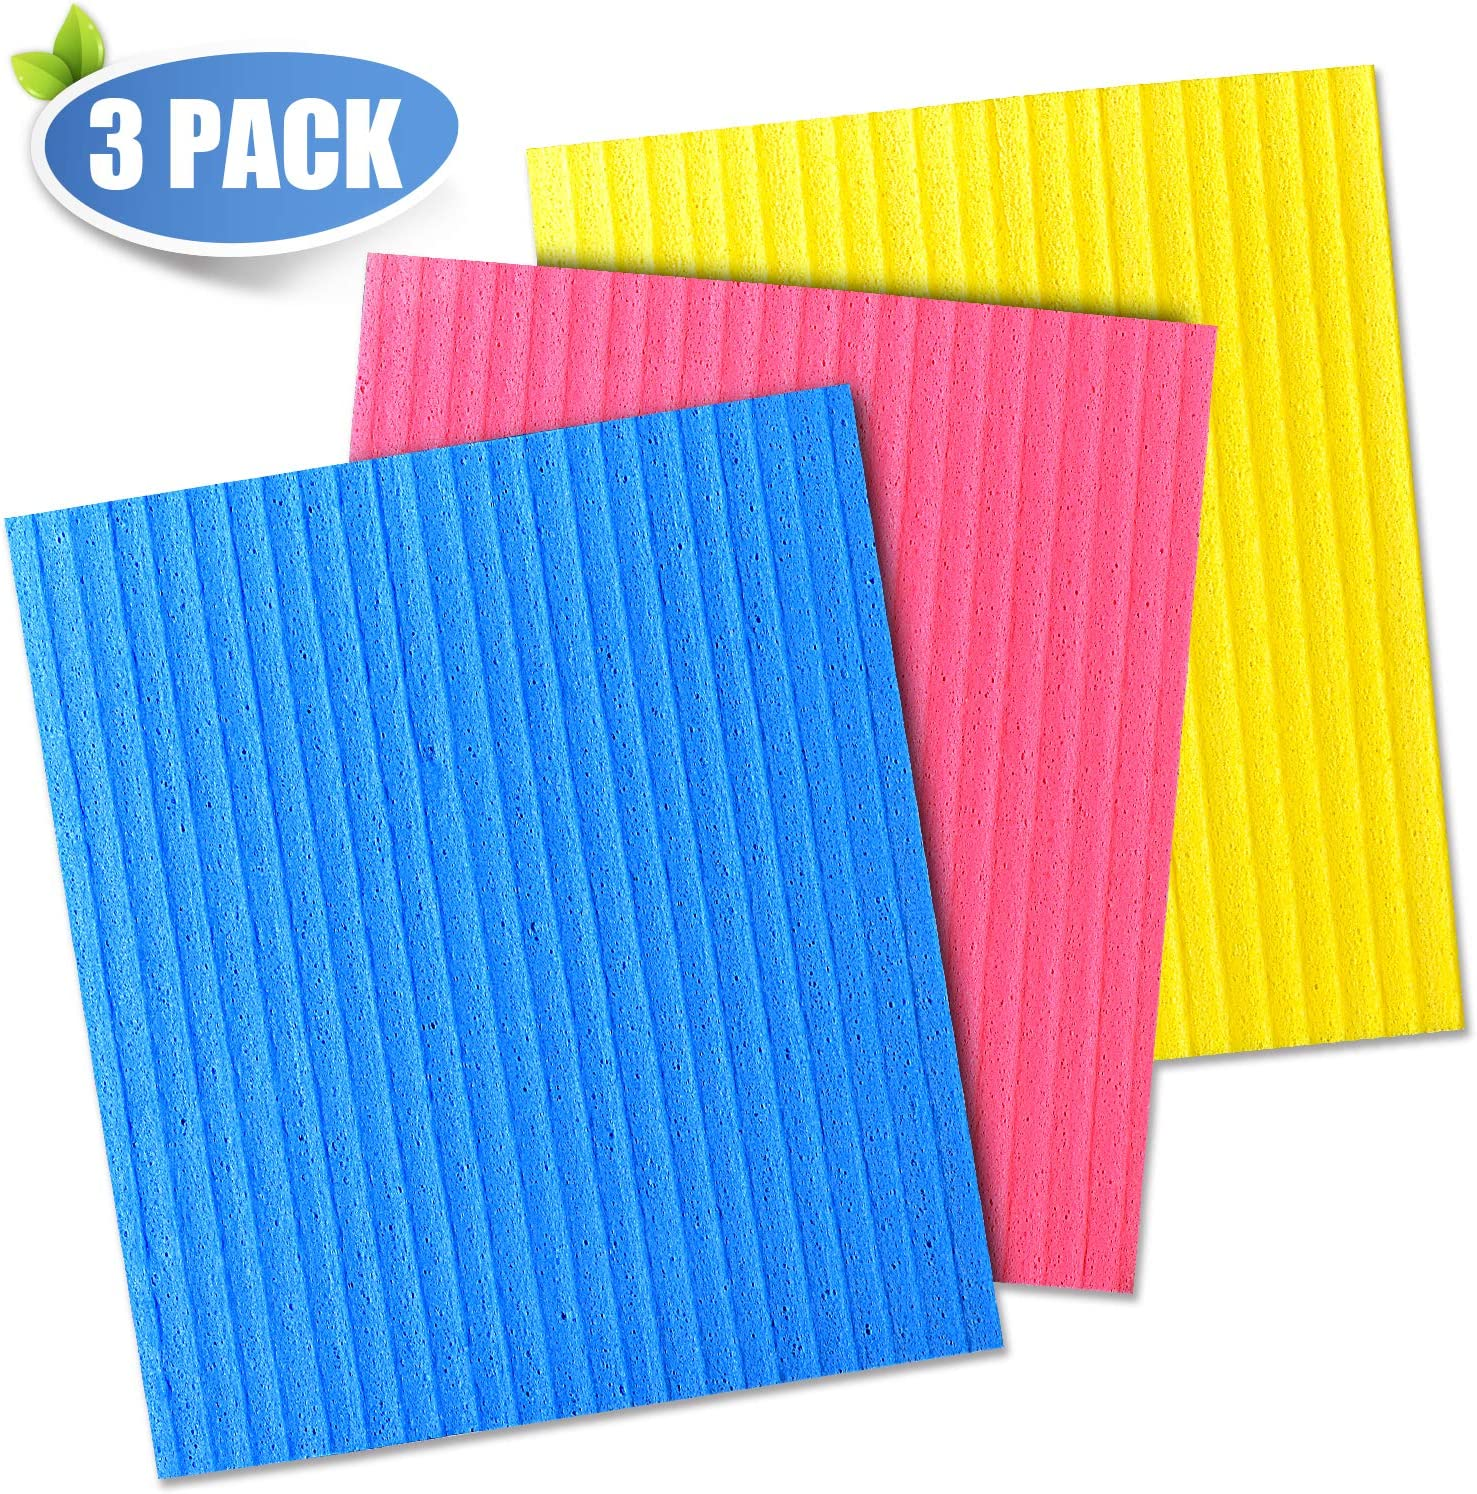 Full Circle Reusable Cellulose Sponge Clothes 3 Pack